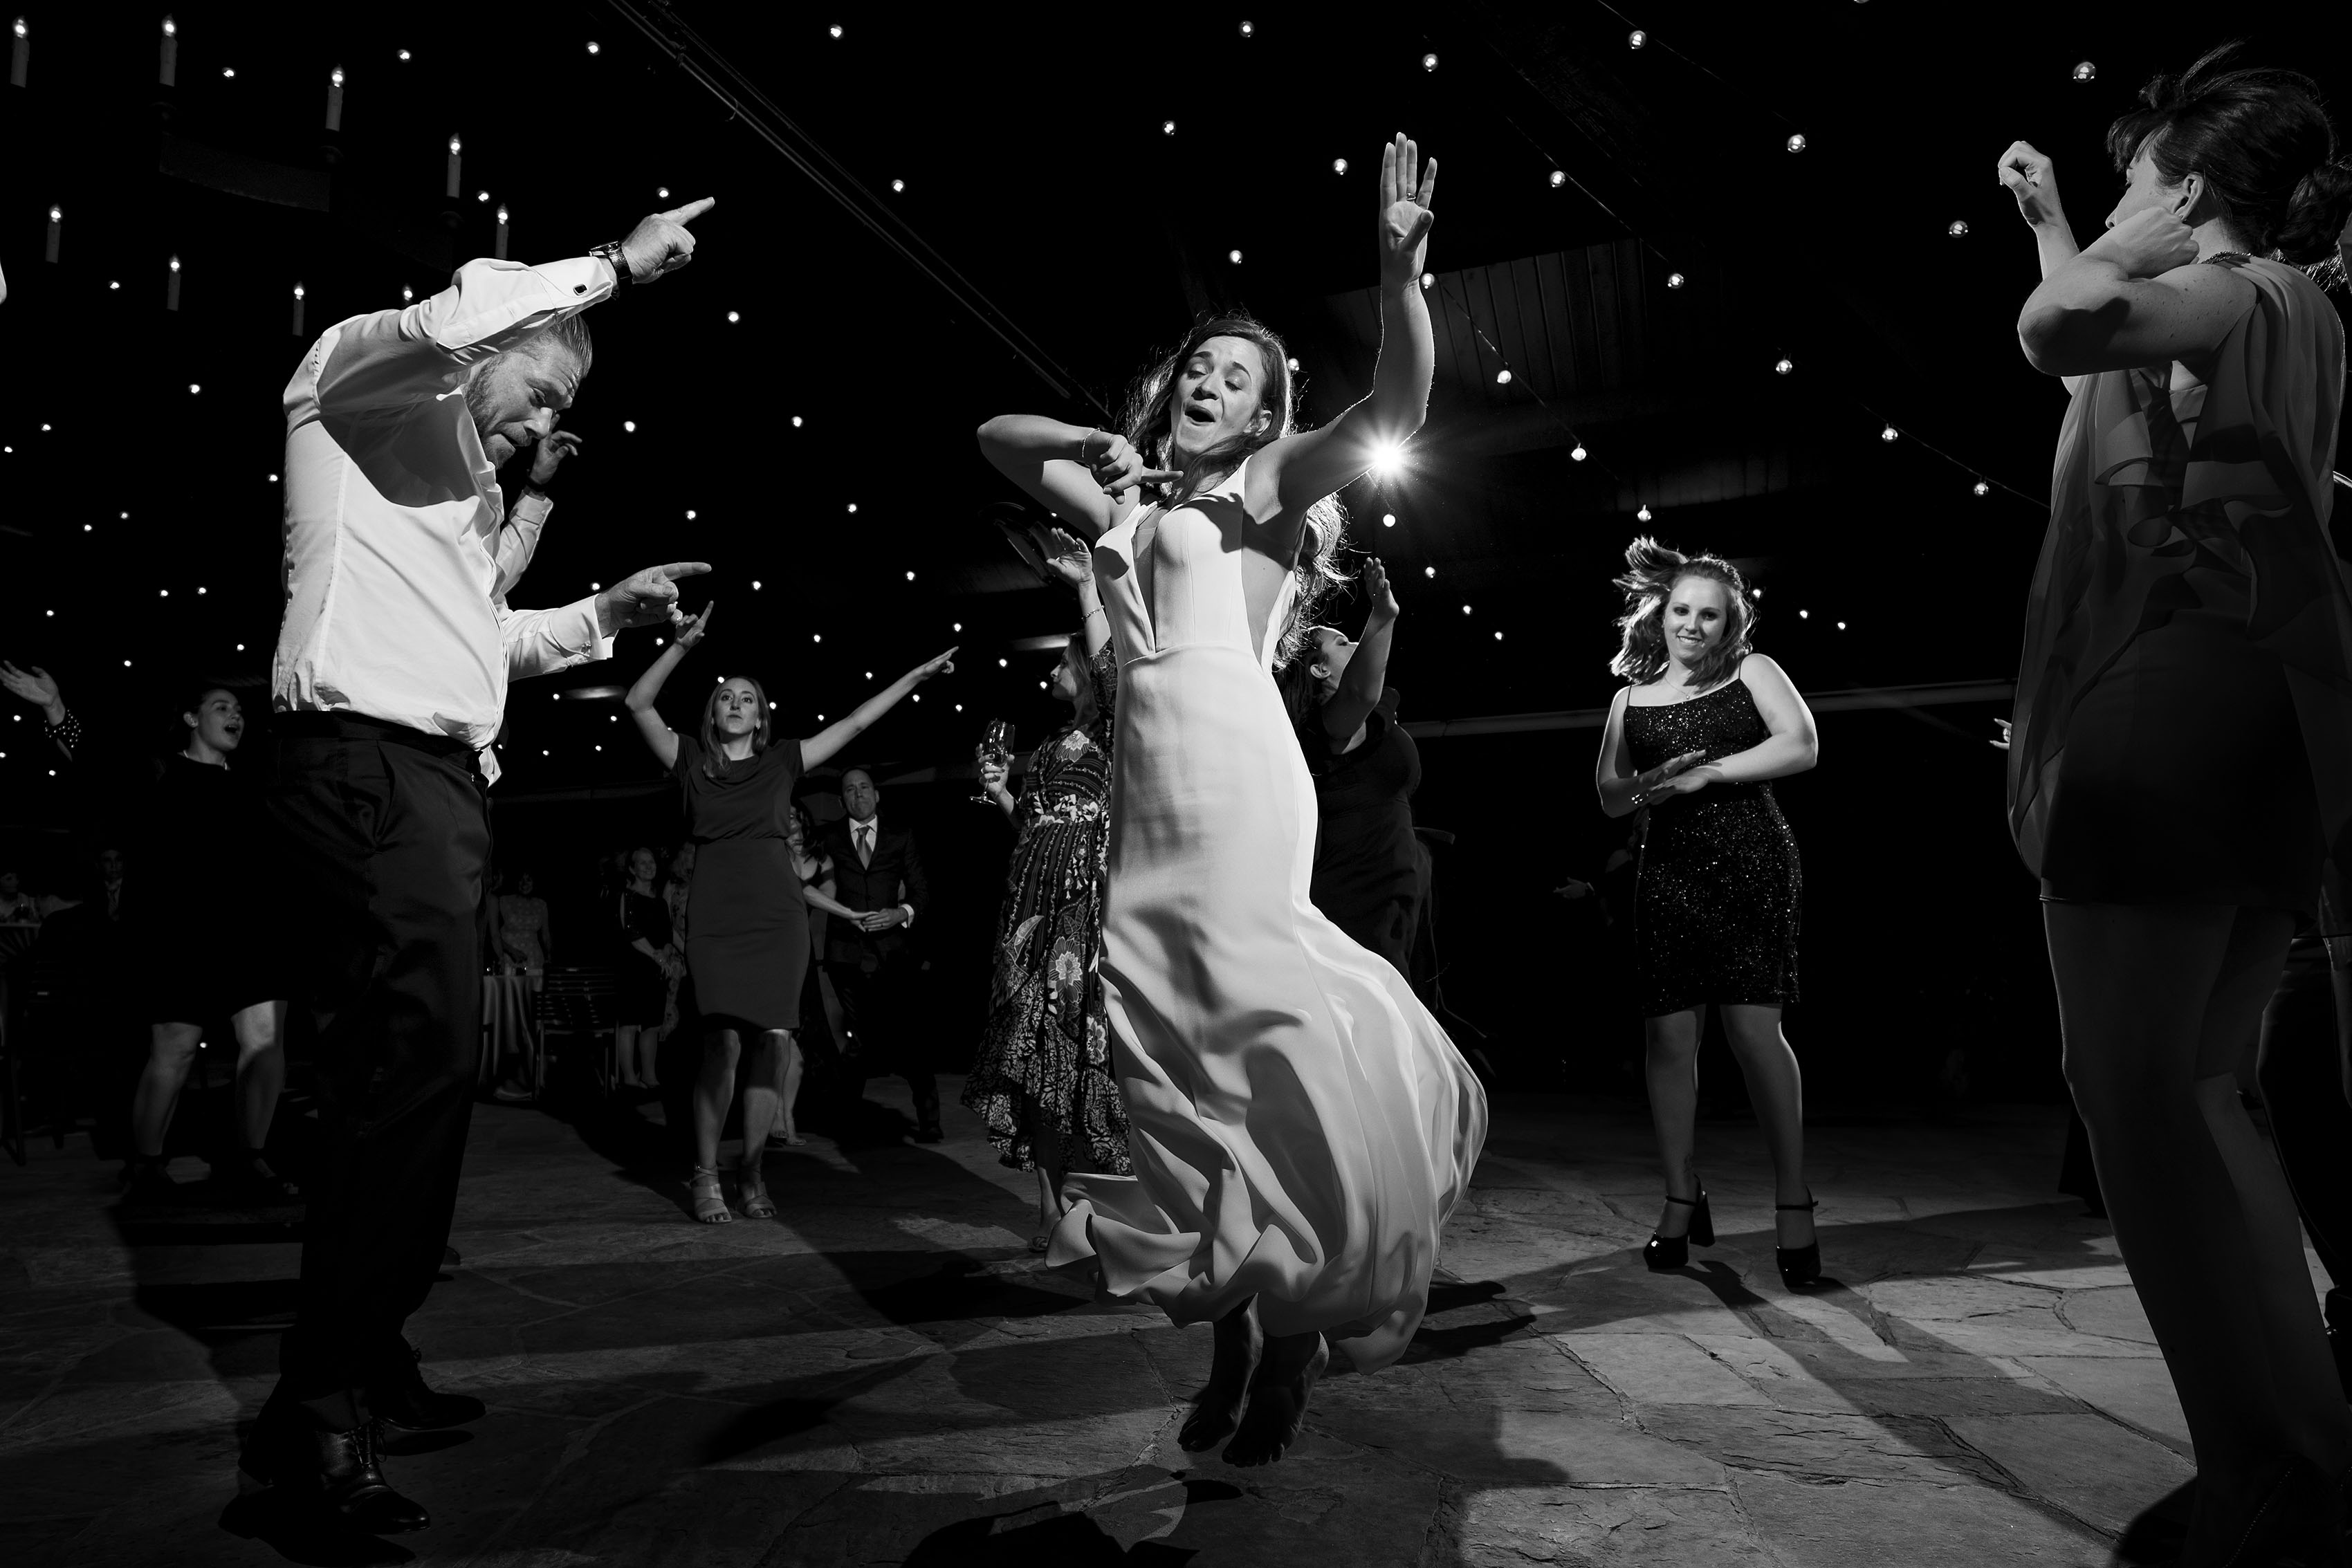 The bride, groom and guests dance during a wedding reception at Sanctuary